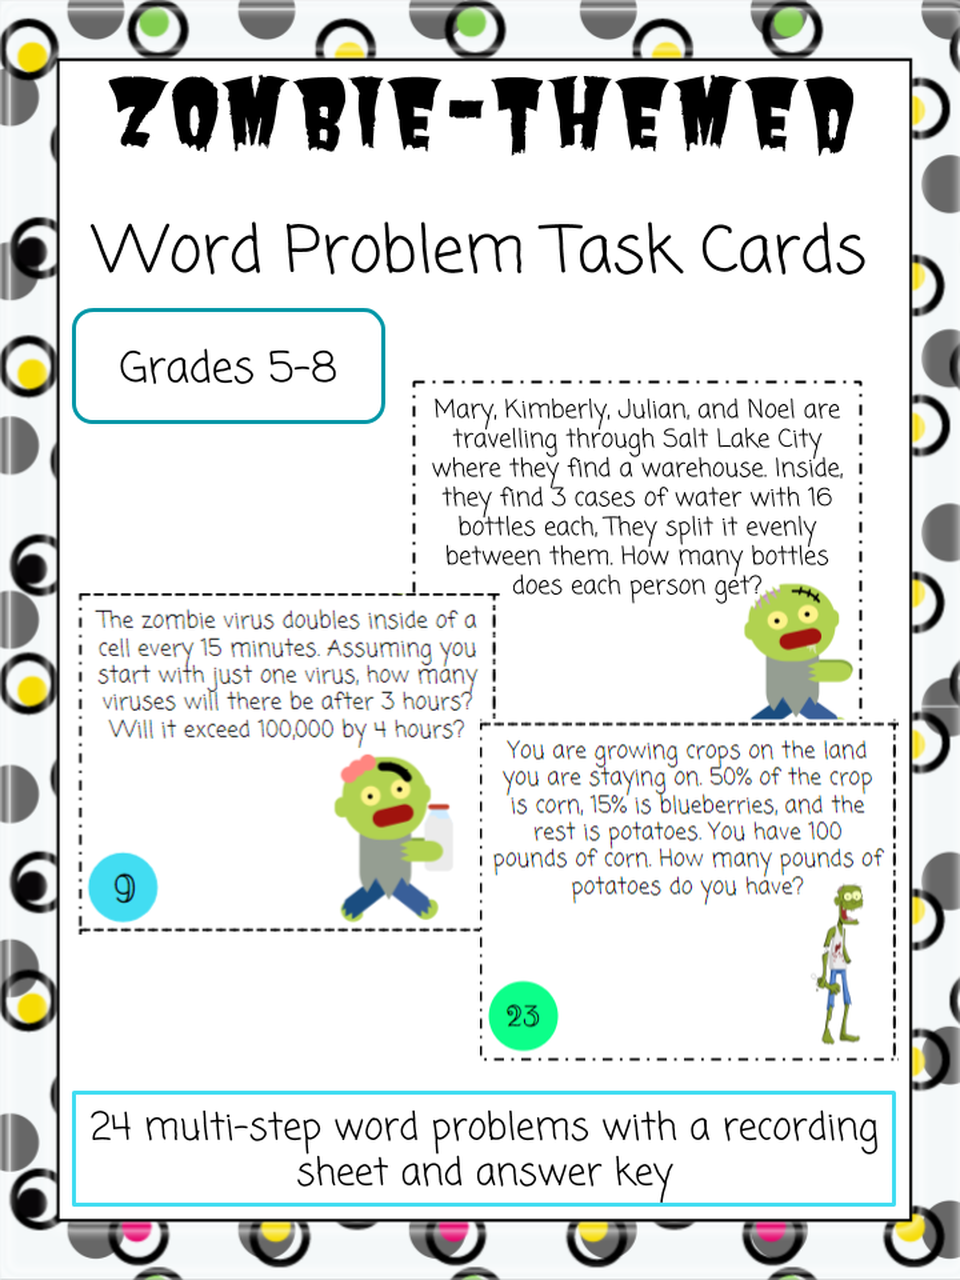 Zombie Themed Word Problem Task Cards Word Problems Word Problems Task Cards Task Cards [ 1280 x 960 Pixel ]